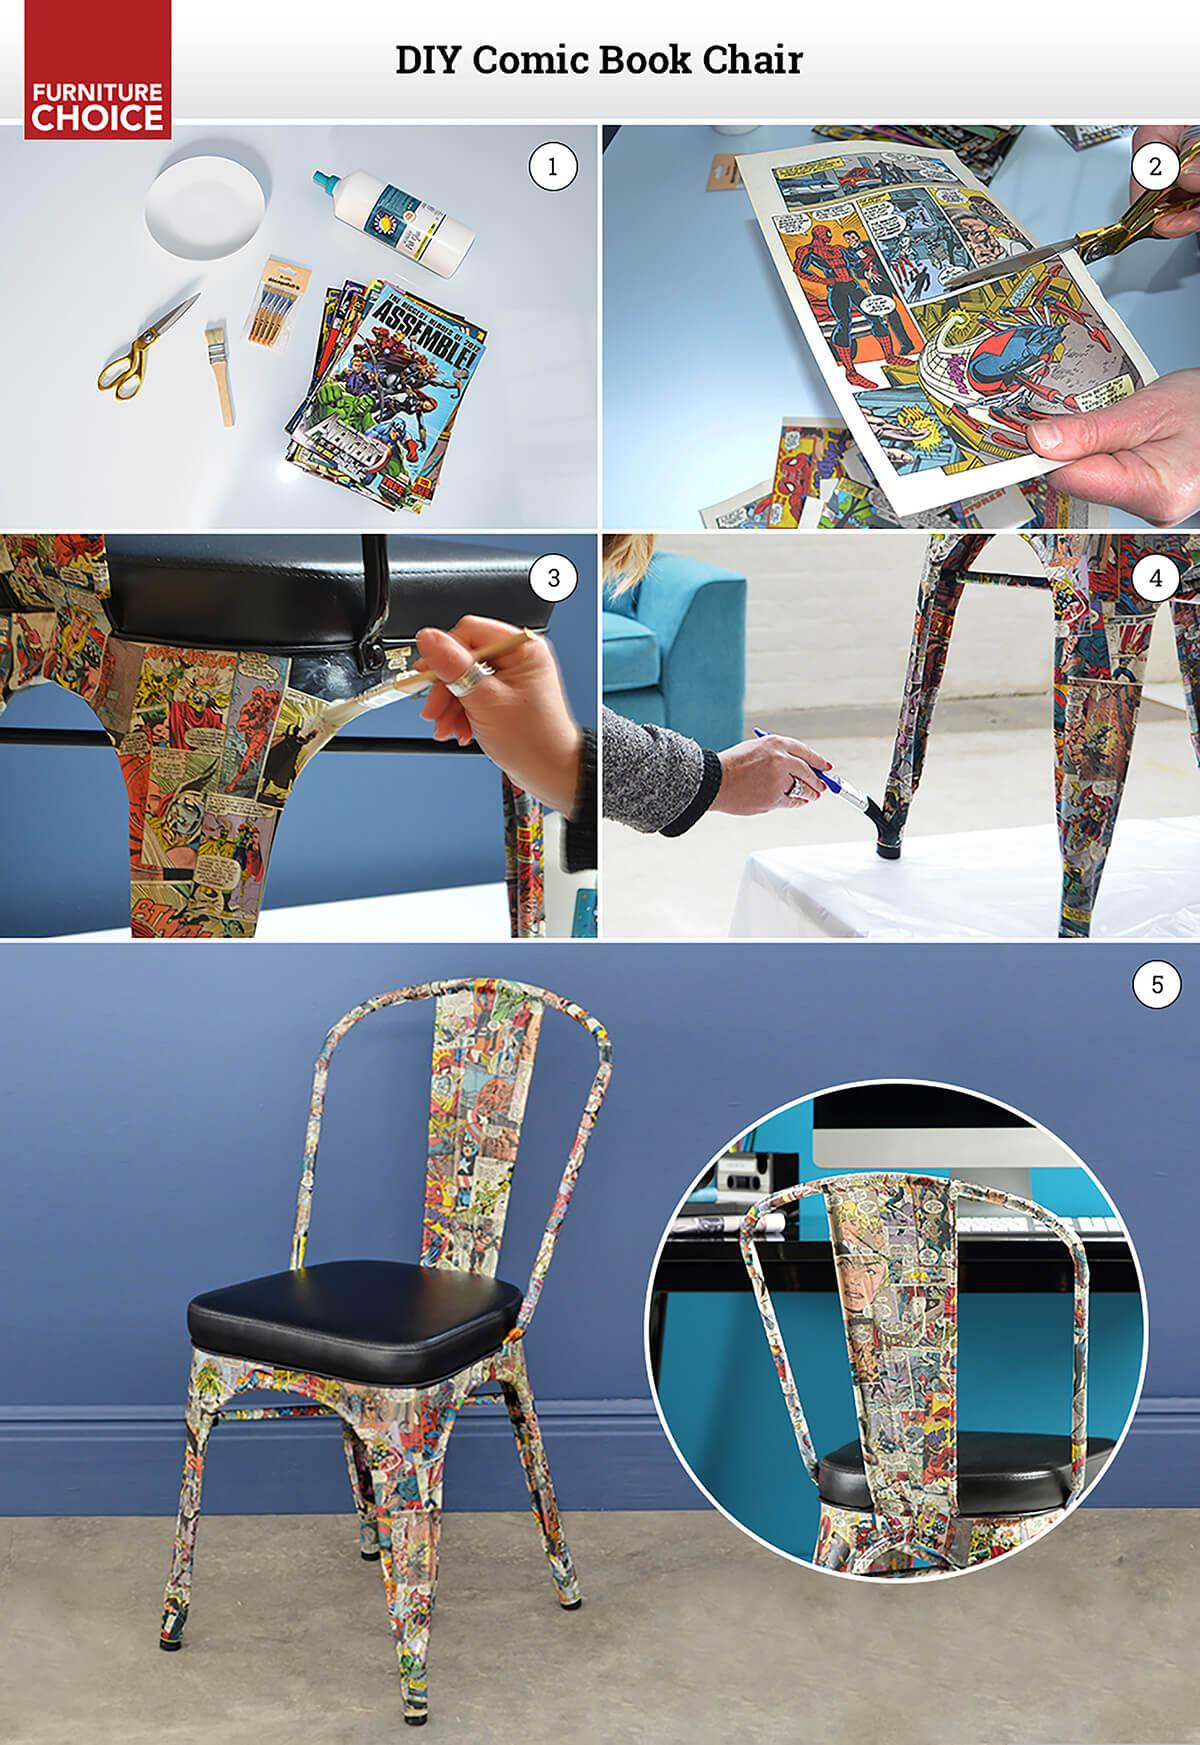 DIY comic book chair